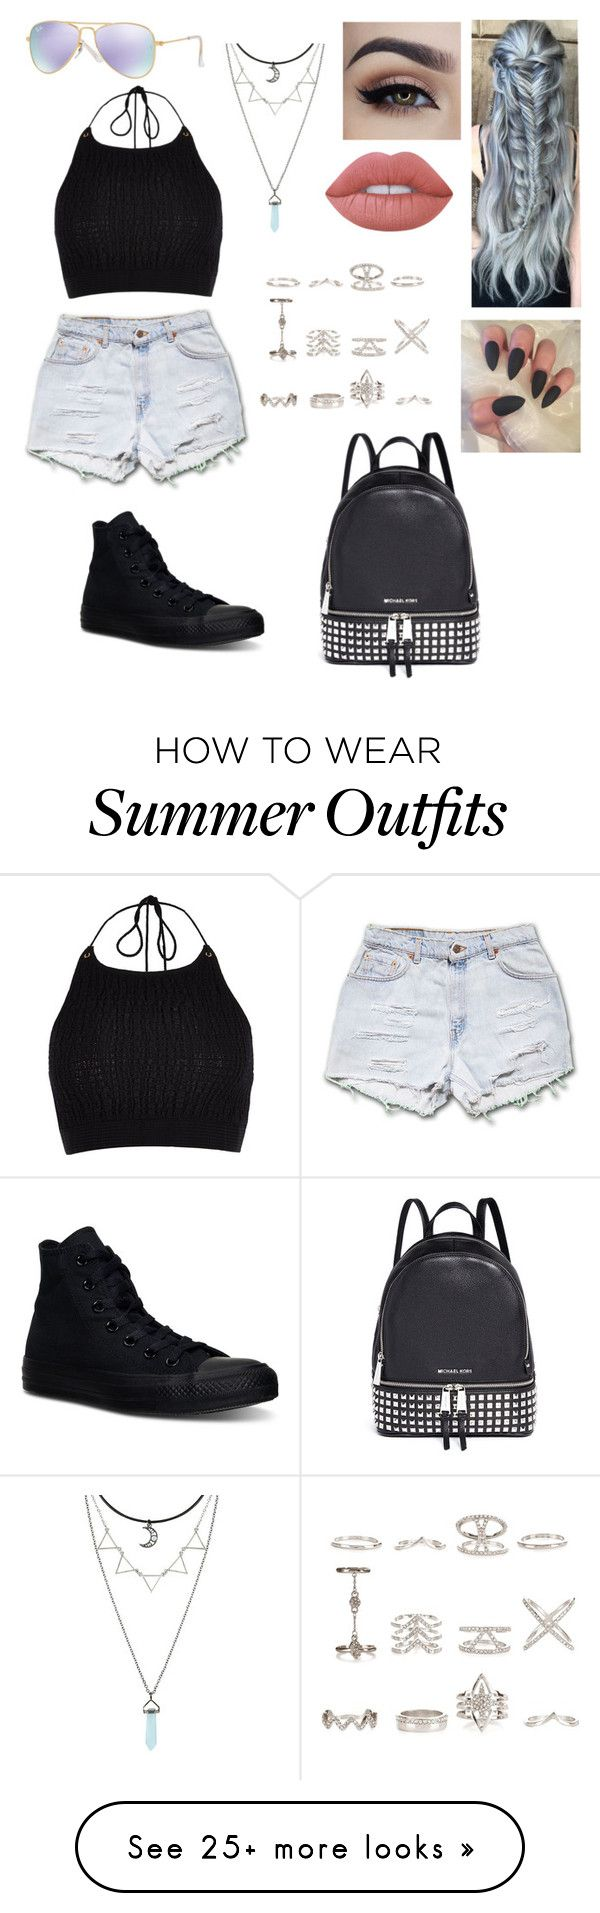 """Summer outfit"" by depressednstressed on Polyvore featuring River Island, Lime Crime, Converse, New Look, Michael Kors and Ray-Ban"